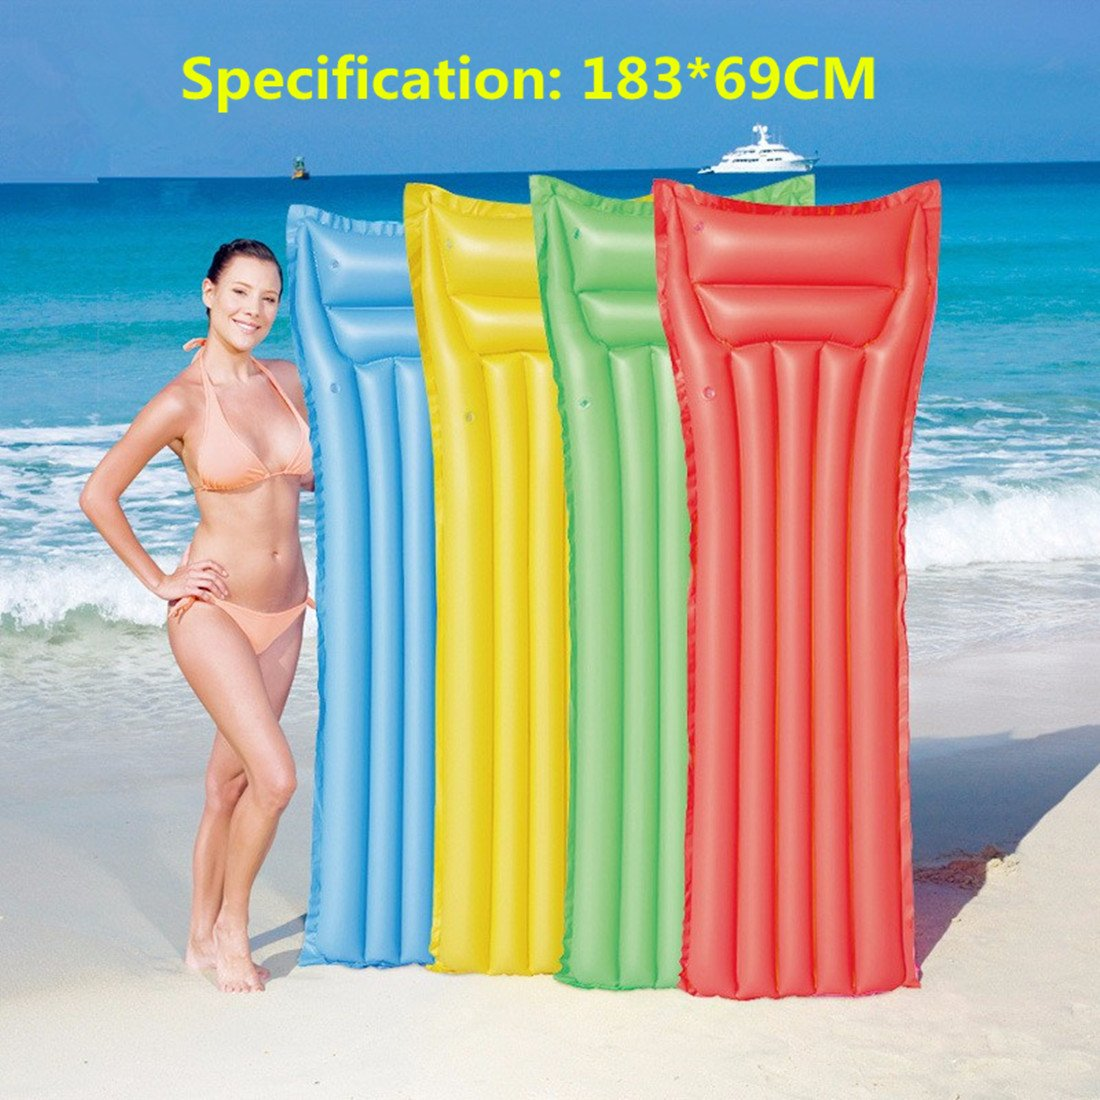 Yukey 1Pc New Float Inflatable Swimming Pool Raft Mat Water Air Floating Lounge Bed for Kids and Adult